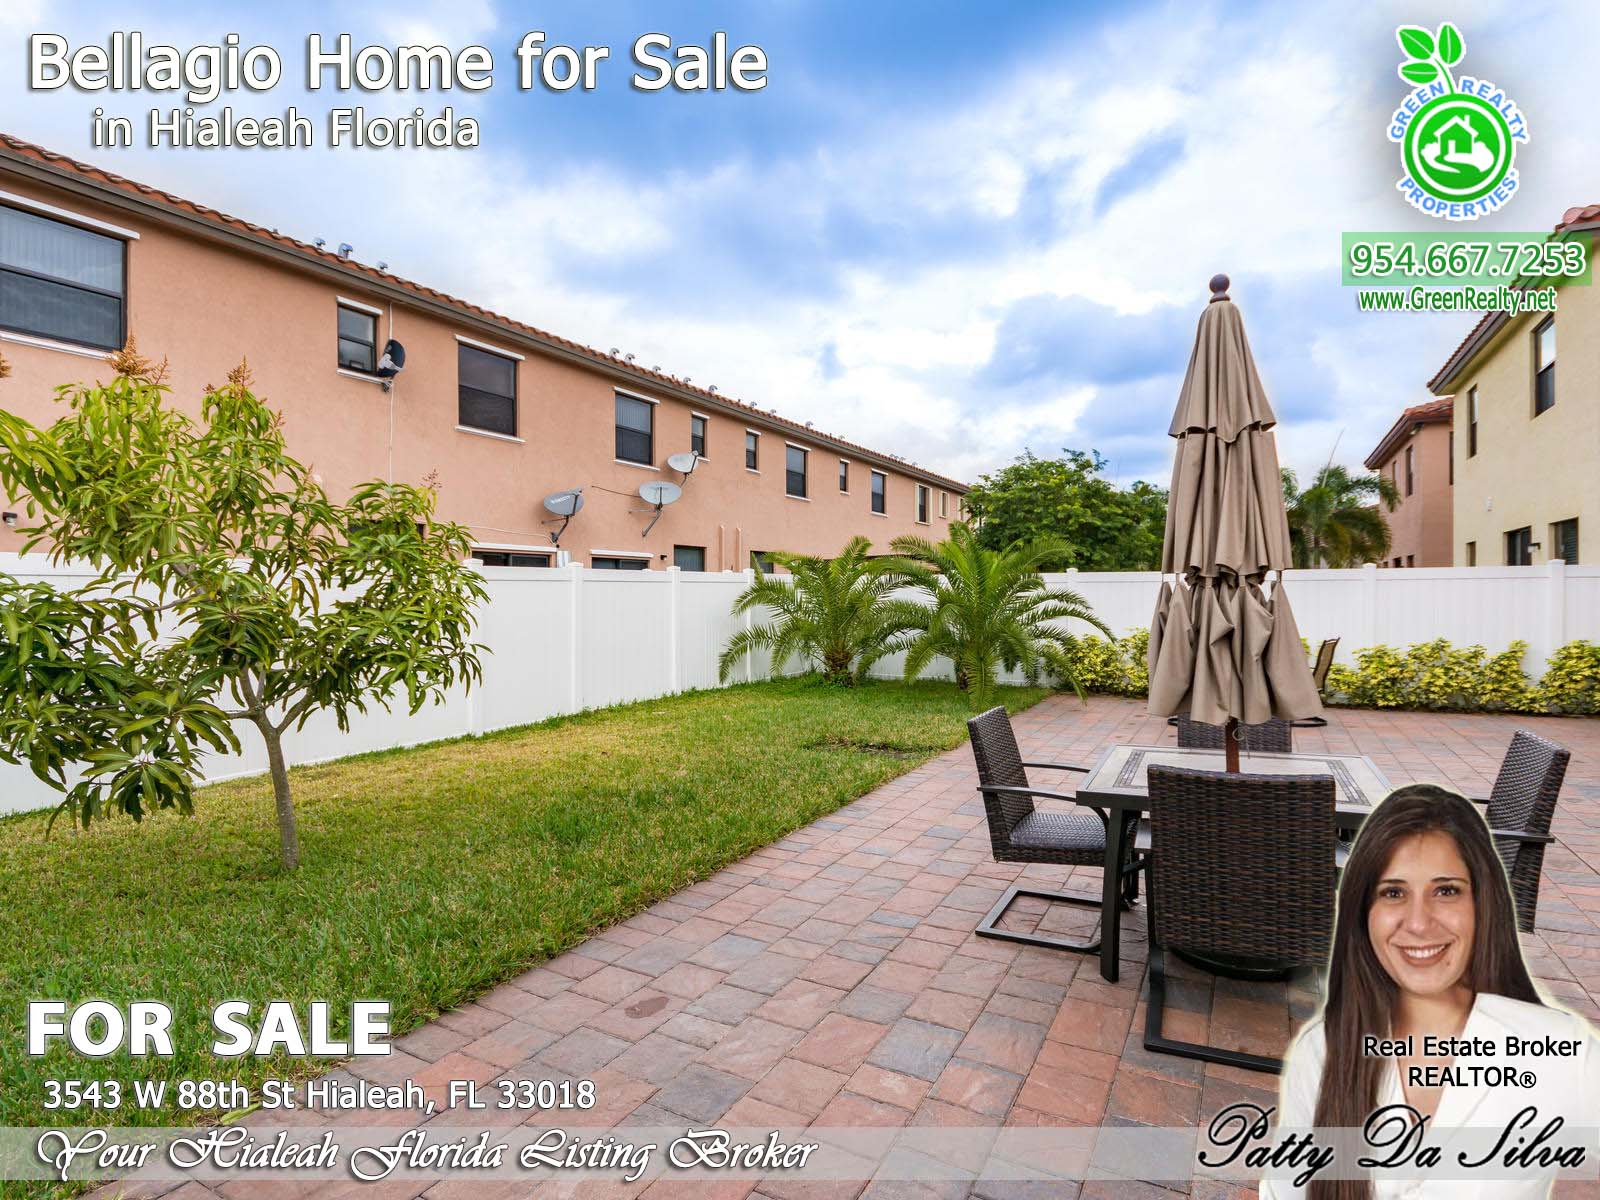 South florida homes for sale by broker Patty da silva of green realty properties (5)